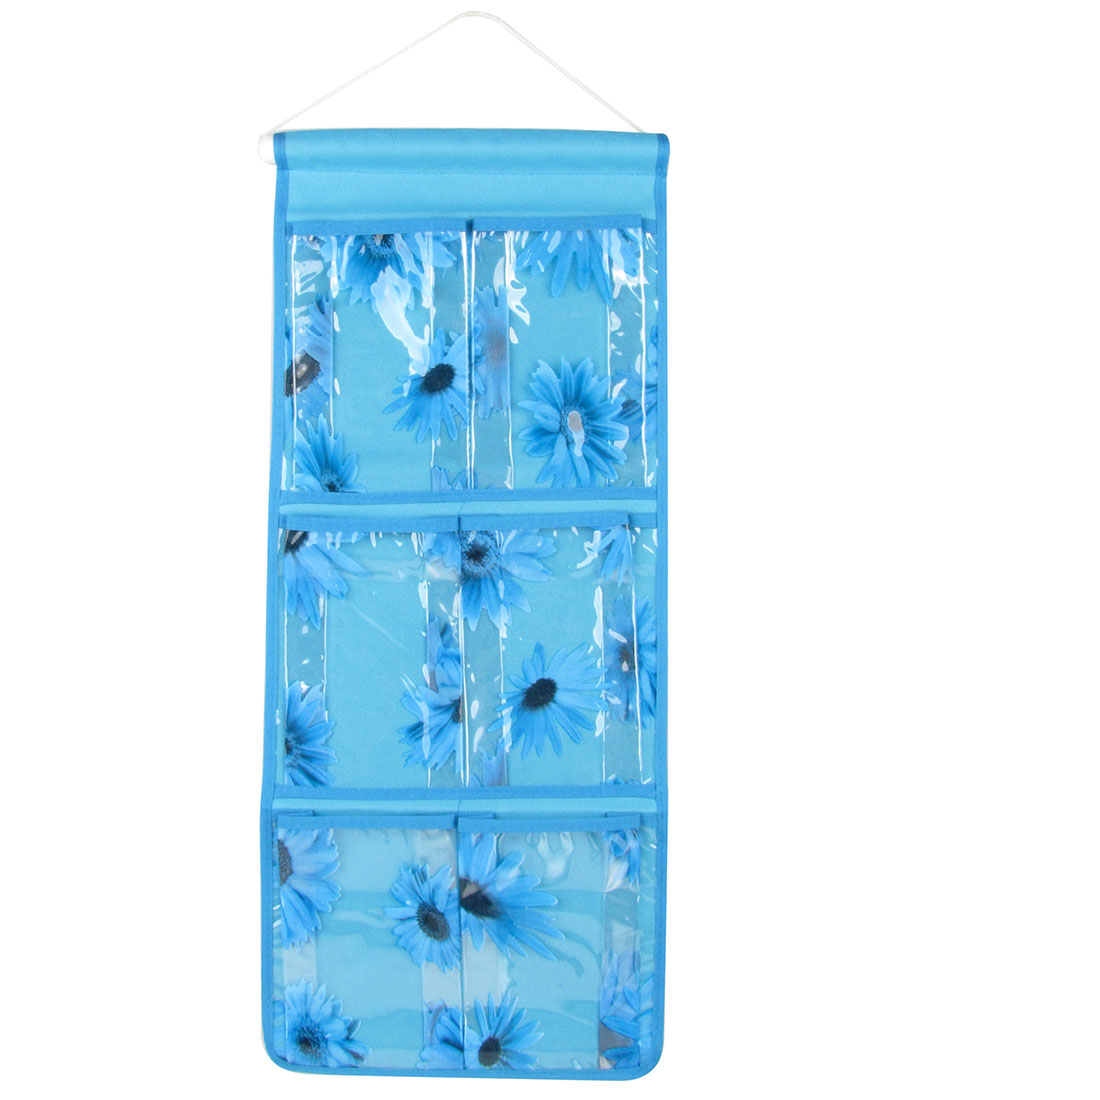 Blue Sunflower Pattern 6 PVC Compartment Organizer Storage Bag Case